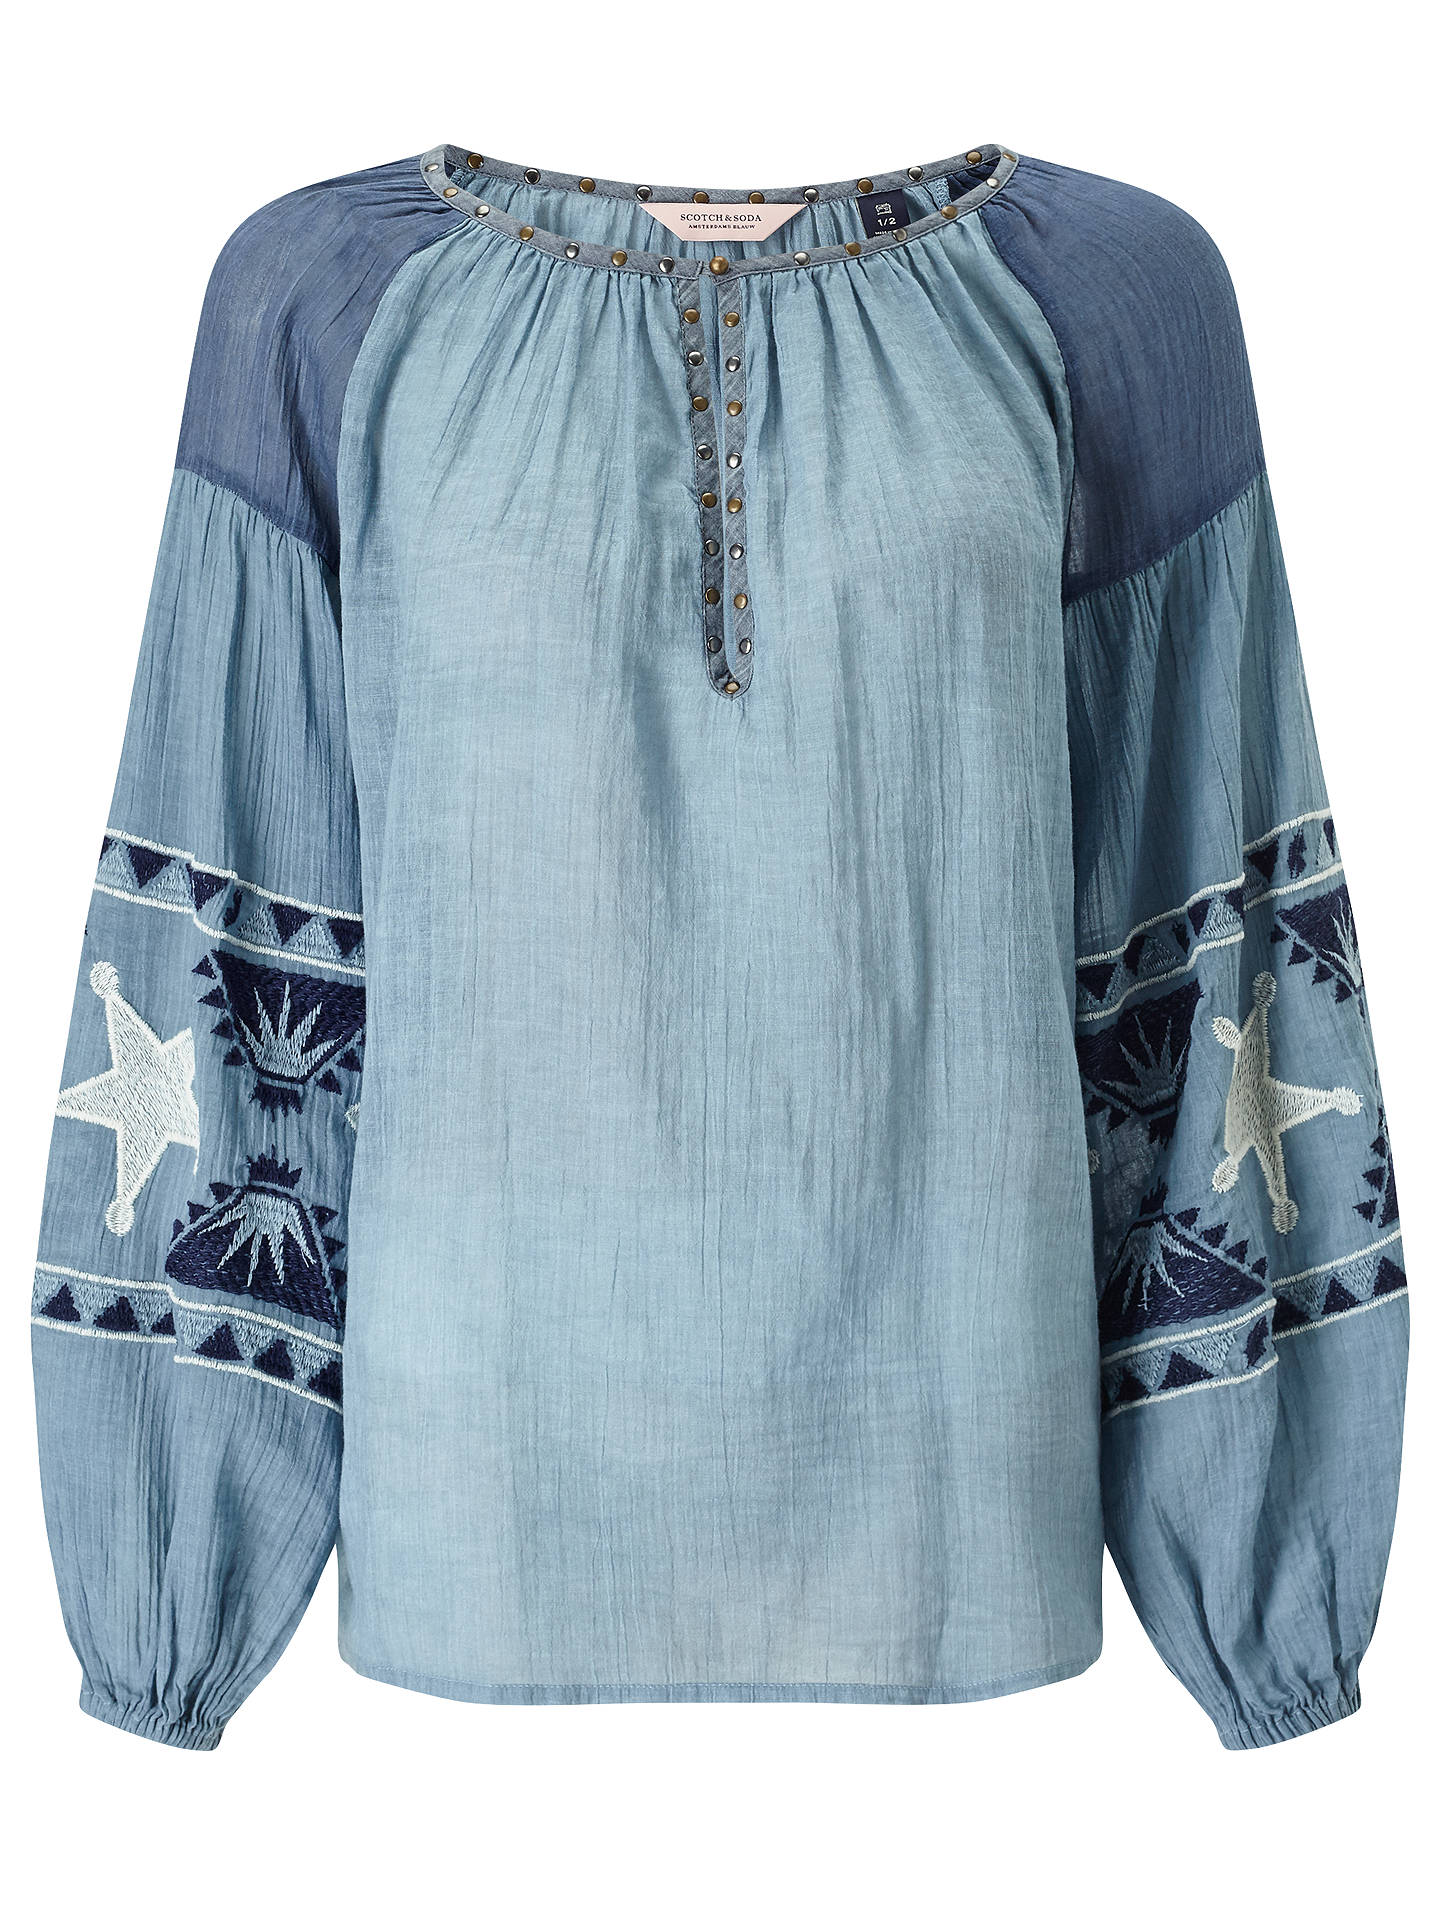 1b9db847d5c Buy Maison Scotch Sheer Embroidered Tunic Top, Indigo, S-M Online at  johnlewis.com ...